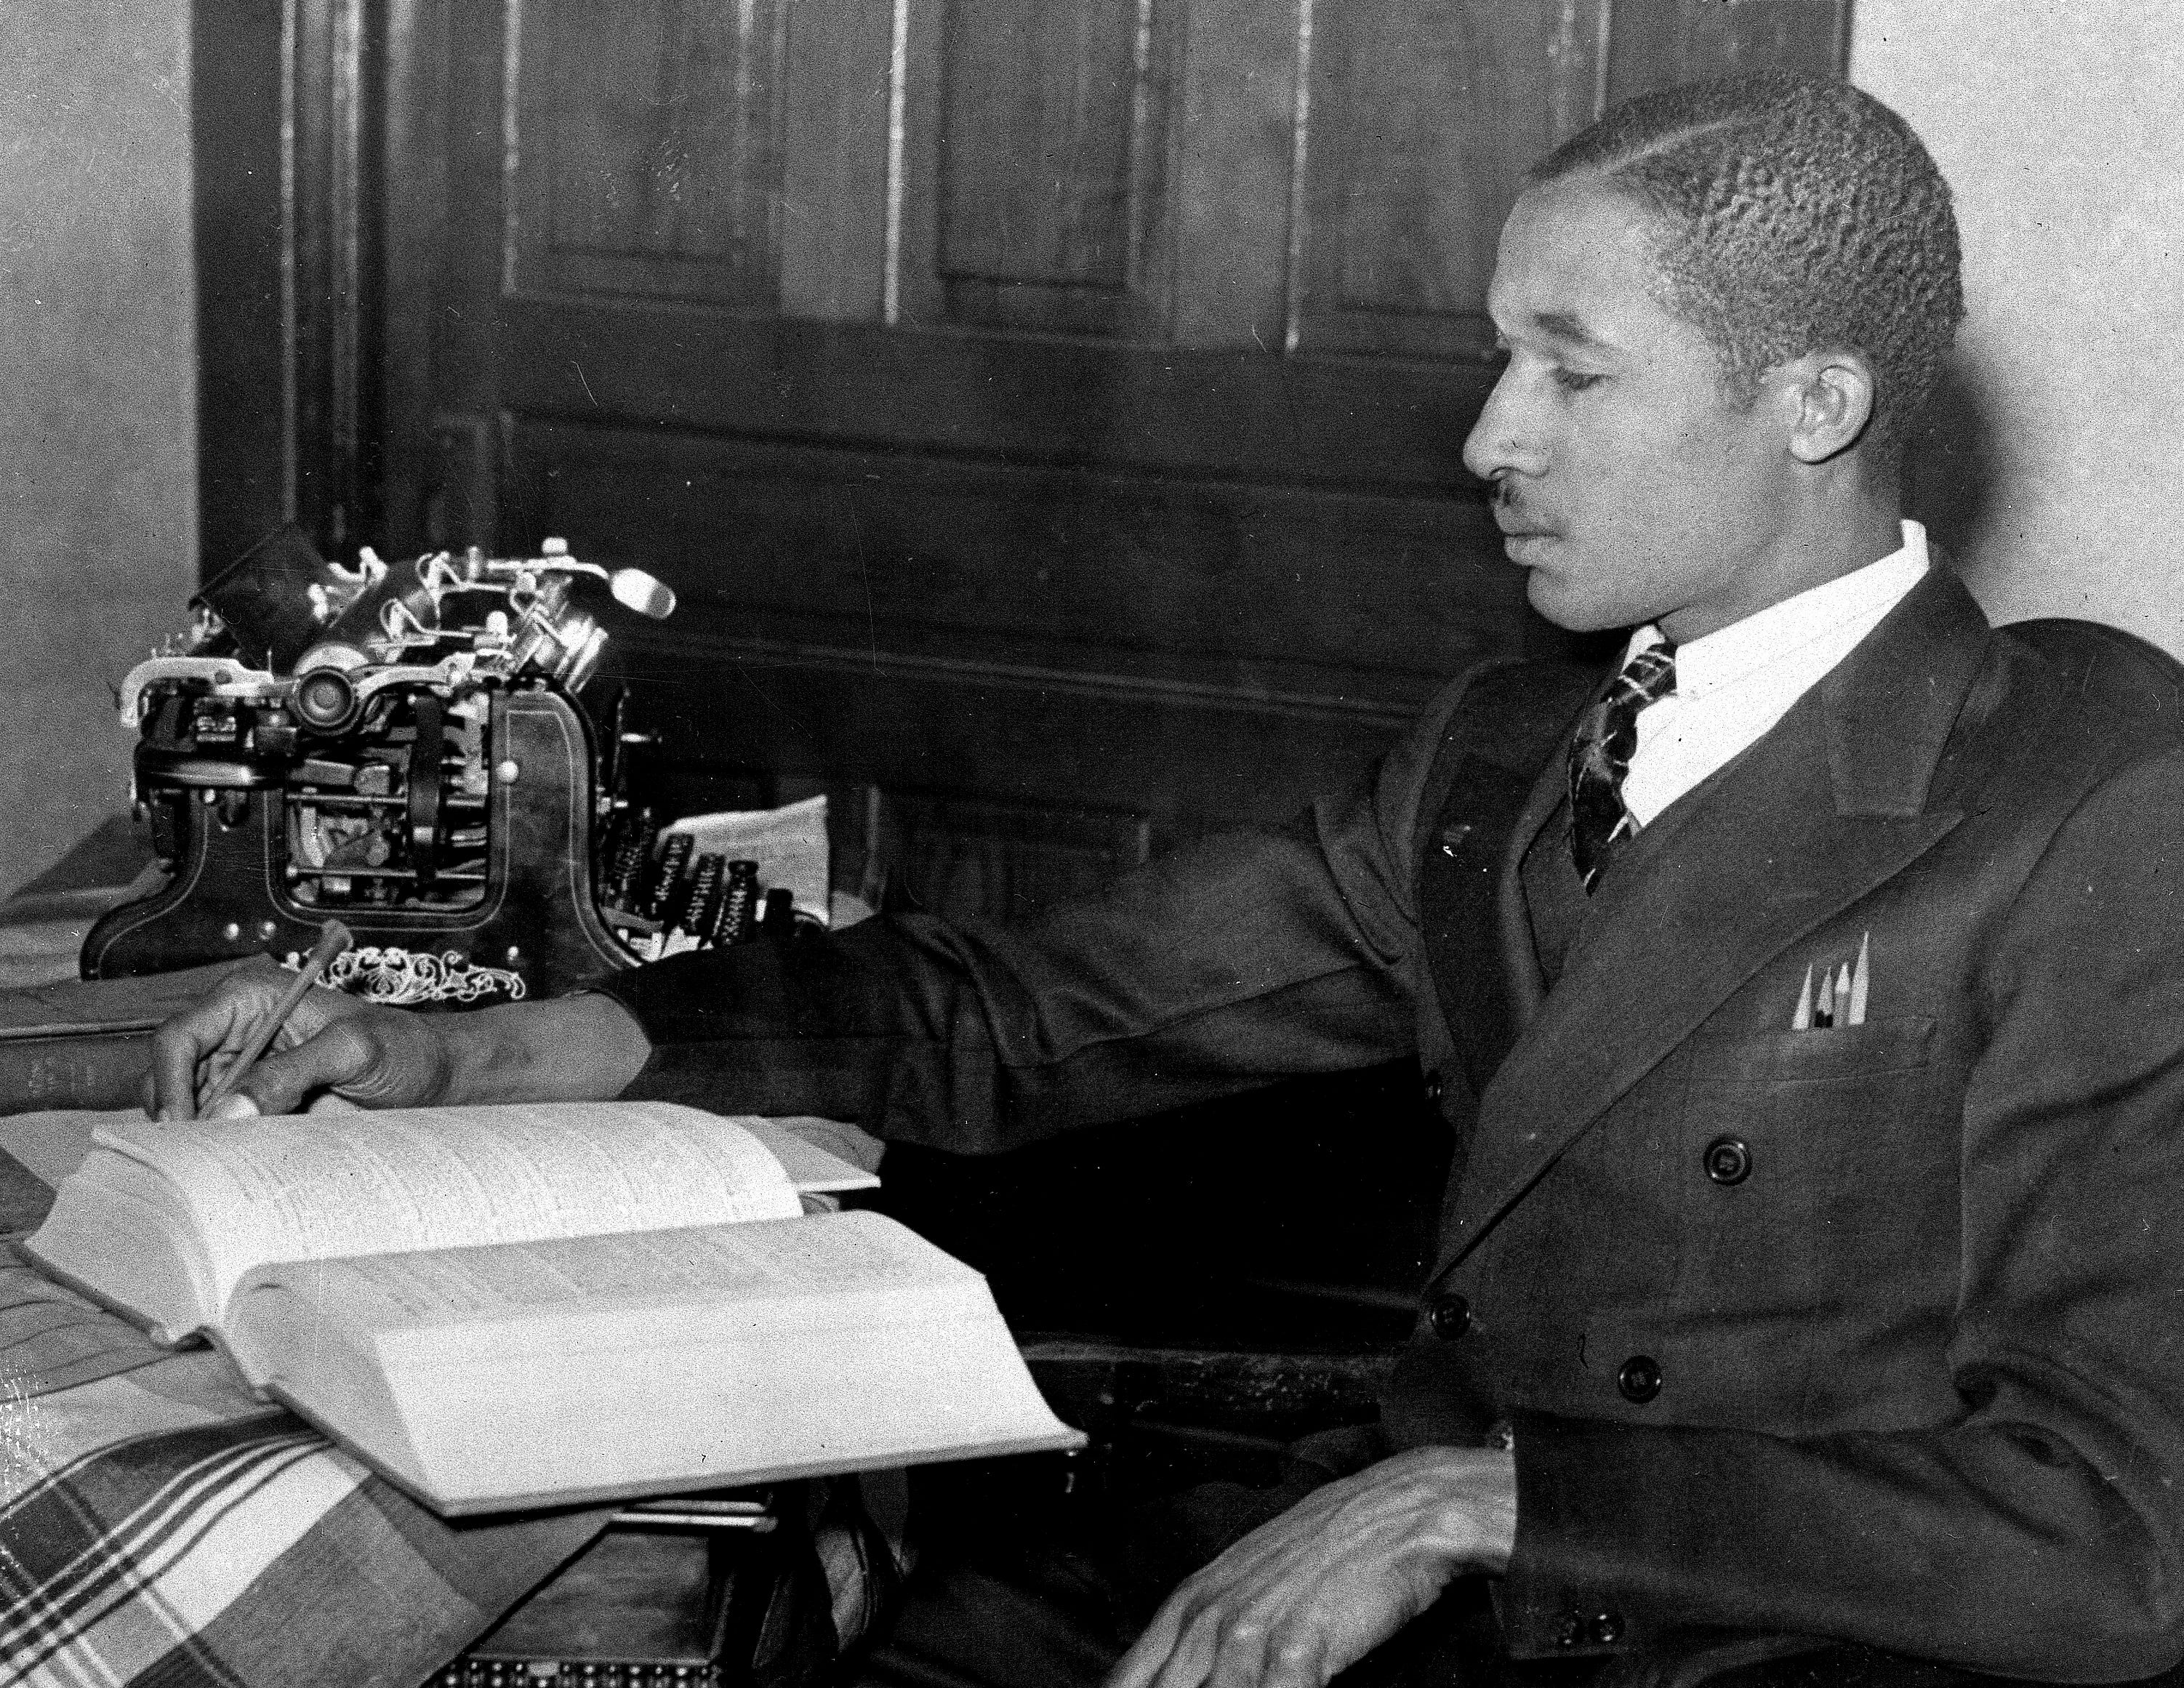 Lloyd Gaines in December 1938, who vanished in 1939 after winning a historic legal fight to attend the University of Missouri's law school as its first Black student.